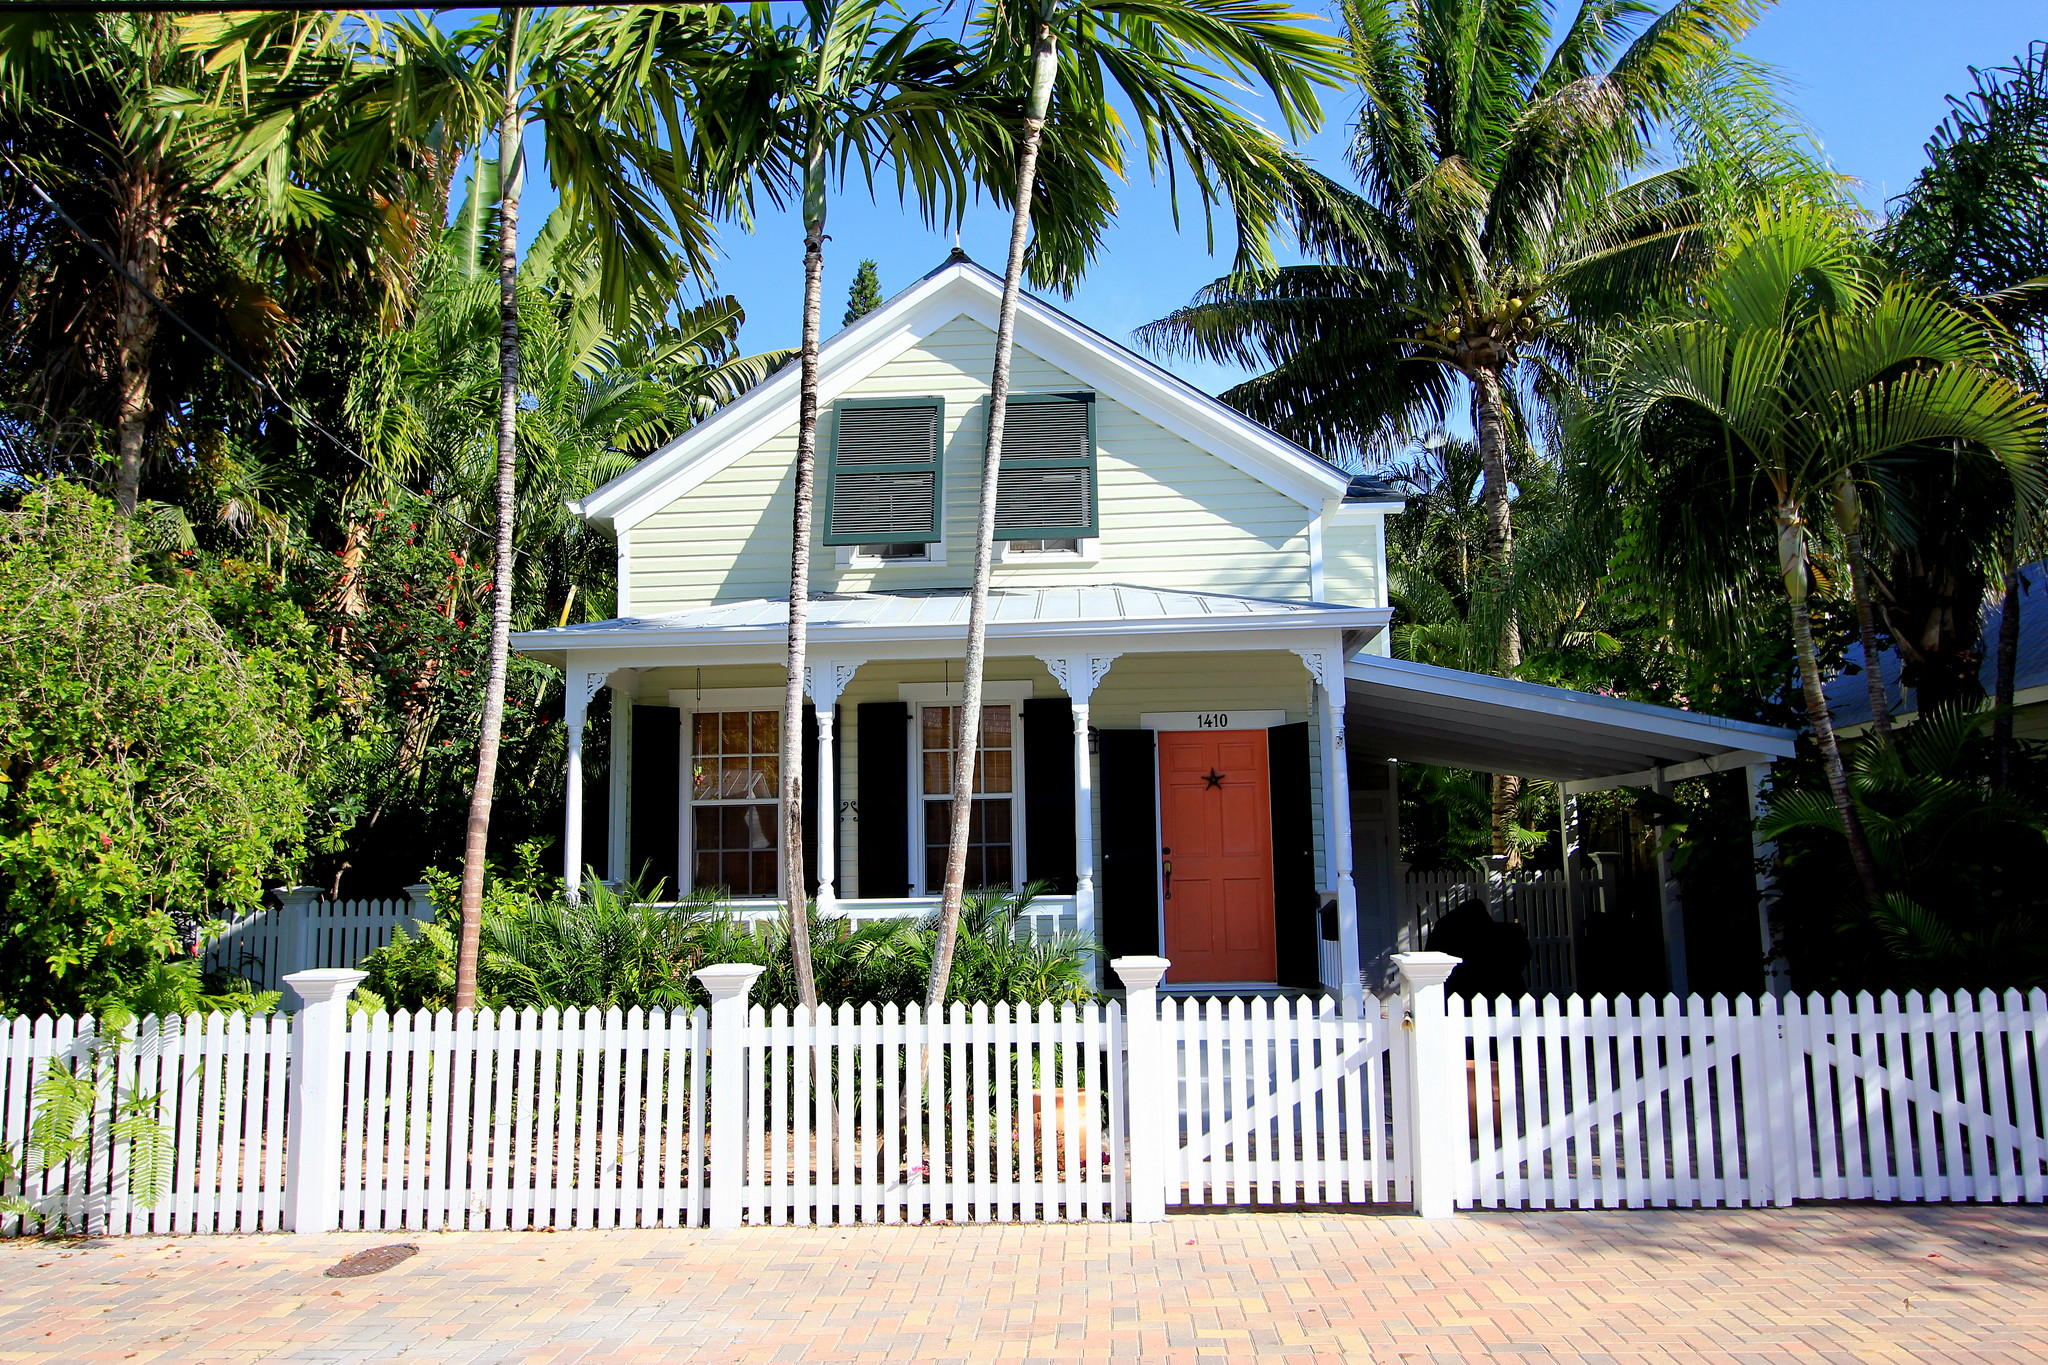 Miraculous Key West Properties 1410 Duncan Street Key West Florida Download Free Architecture Designs Sospemadebymaigaardcom